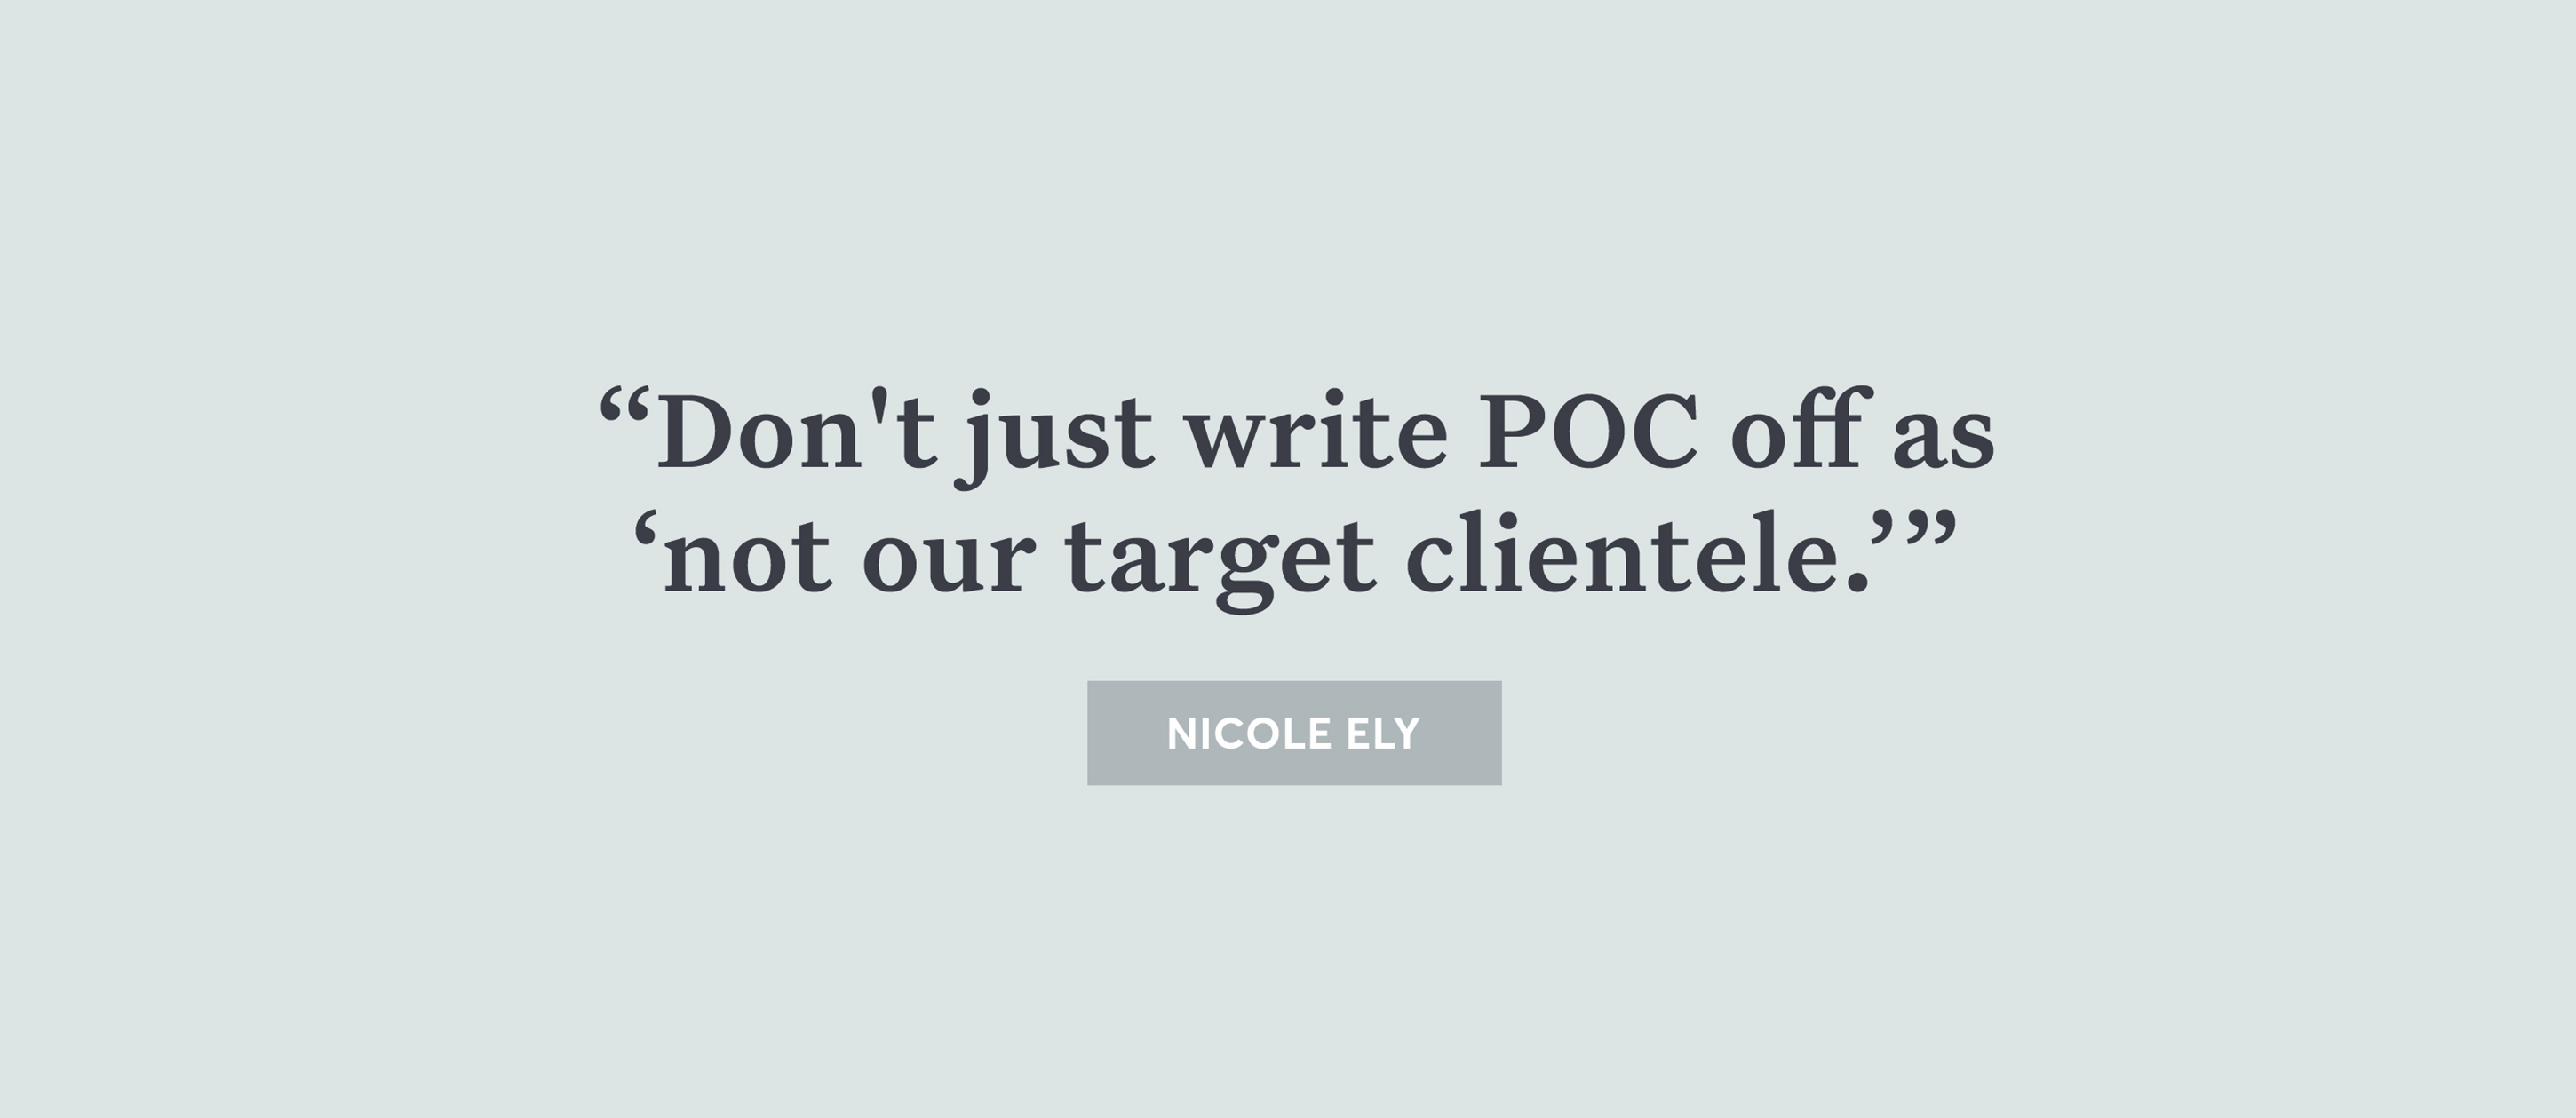 don't write POC off quote